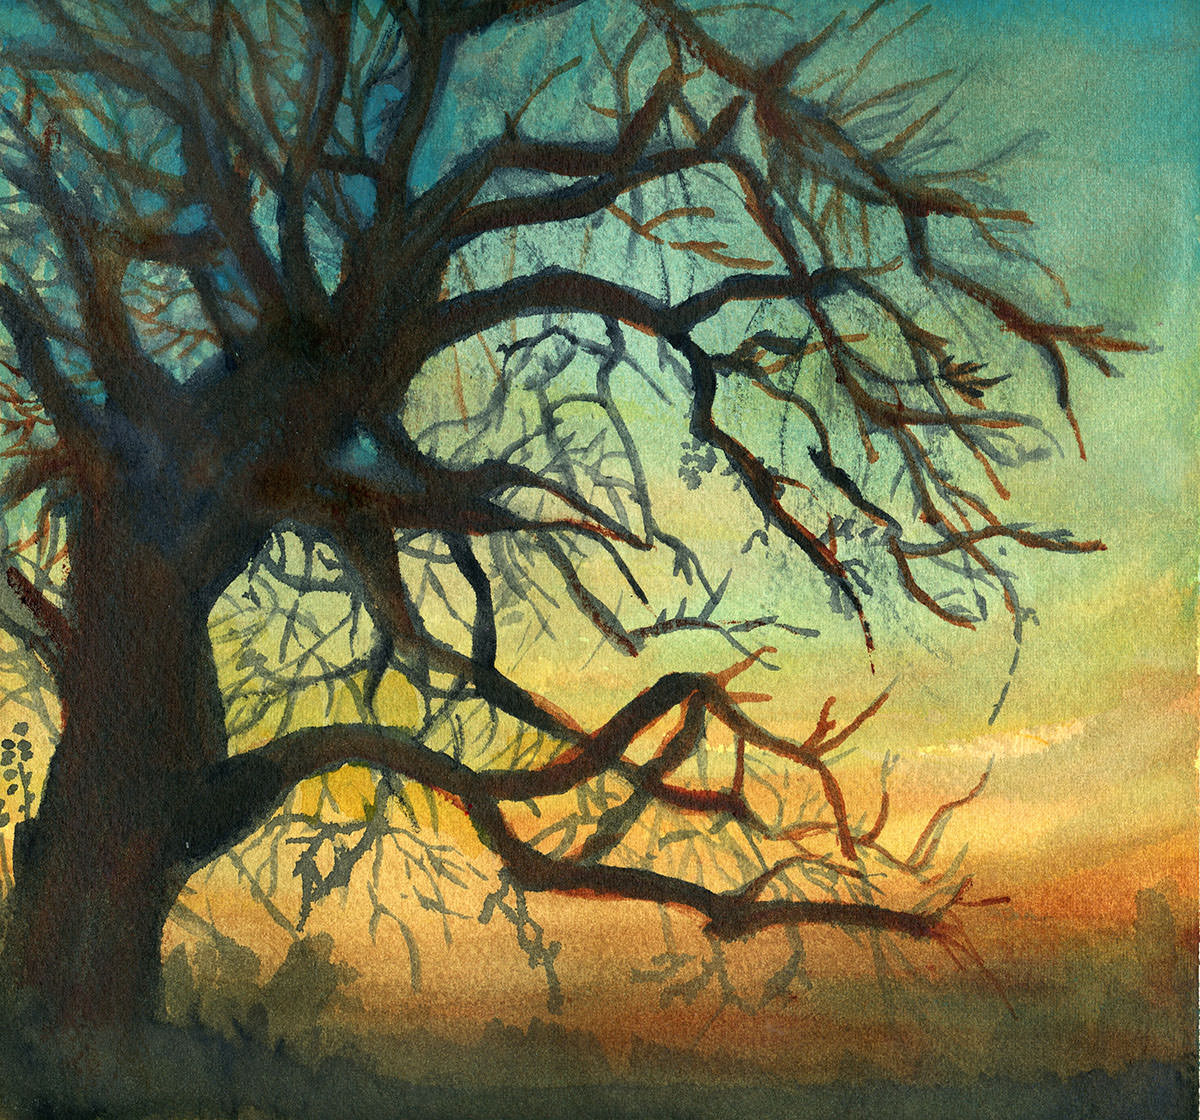 #WorldWatercolorGroup - Watercolor by Sandra Strait - Sunset in Rust and Teal-Cobalt Teal, Quin Rust, New Gamboge on Gemini Coldpress - Doodlewash